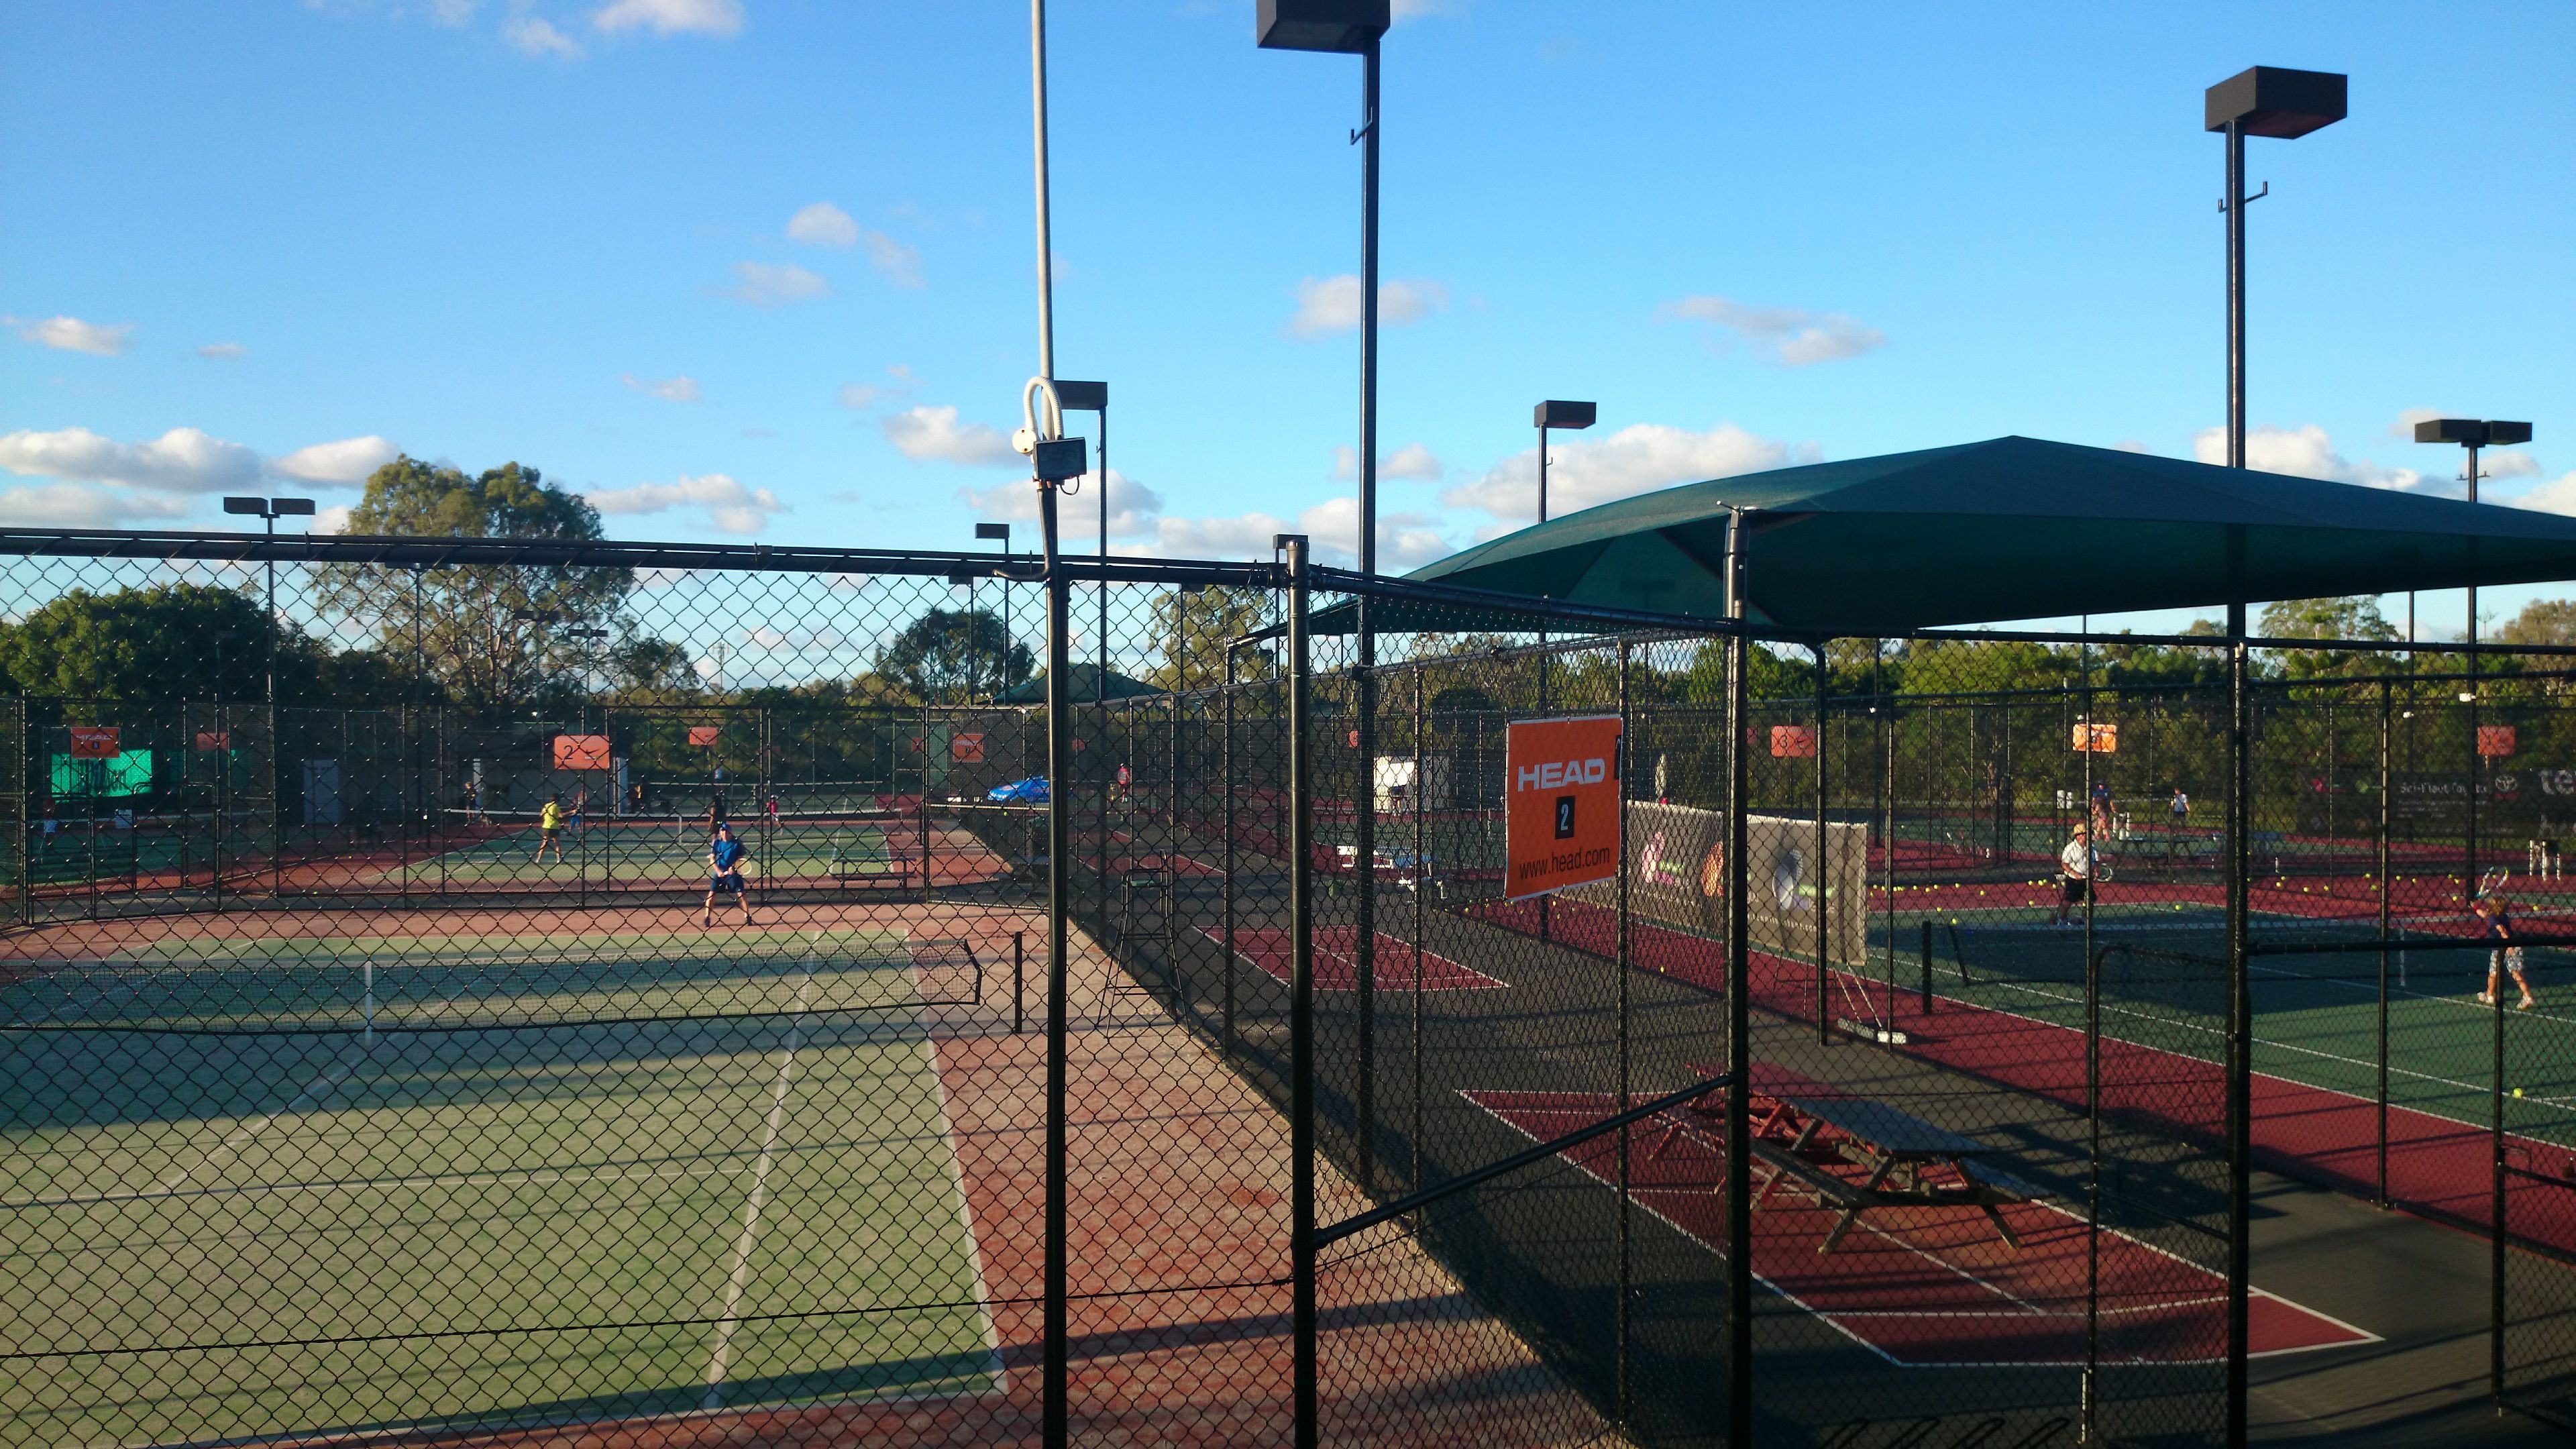 Morningside Tennis Centre - Superleague action